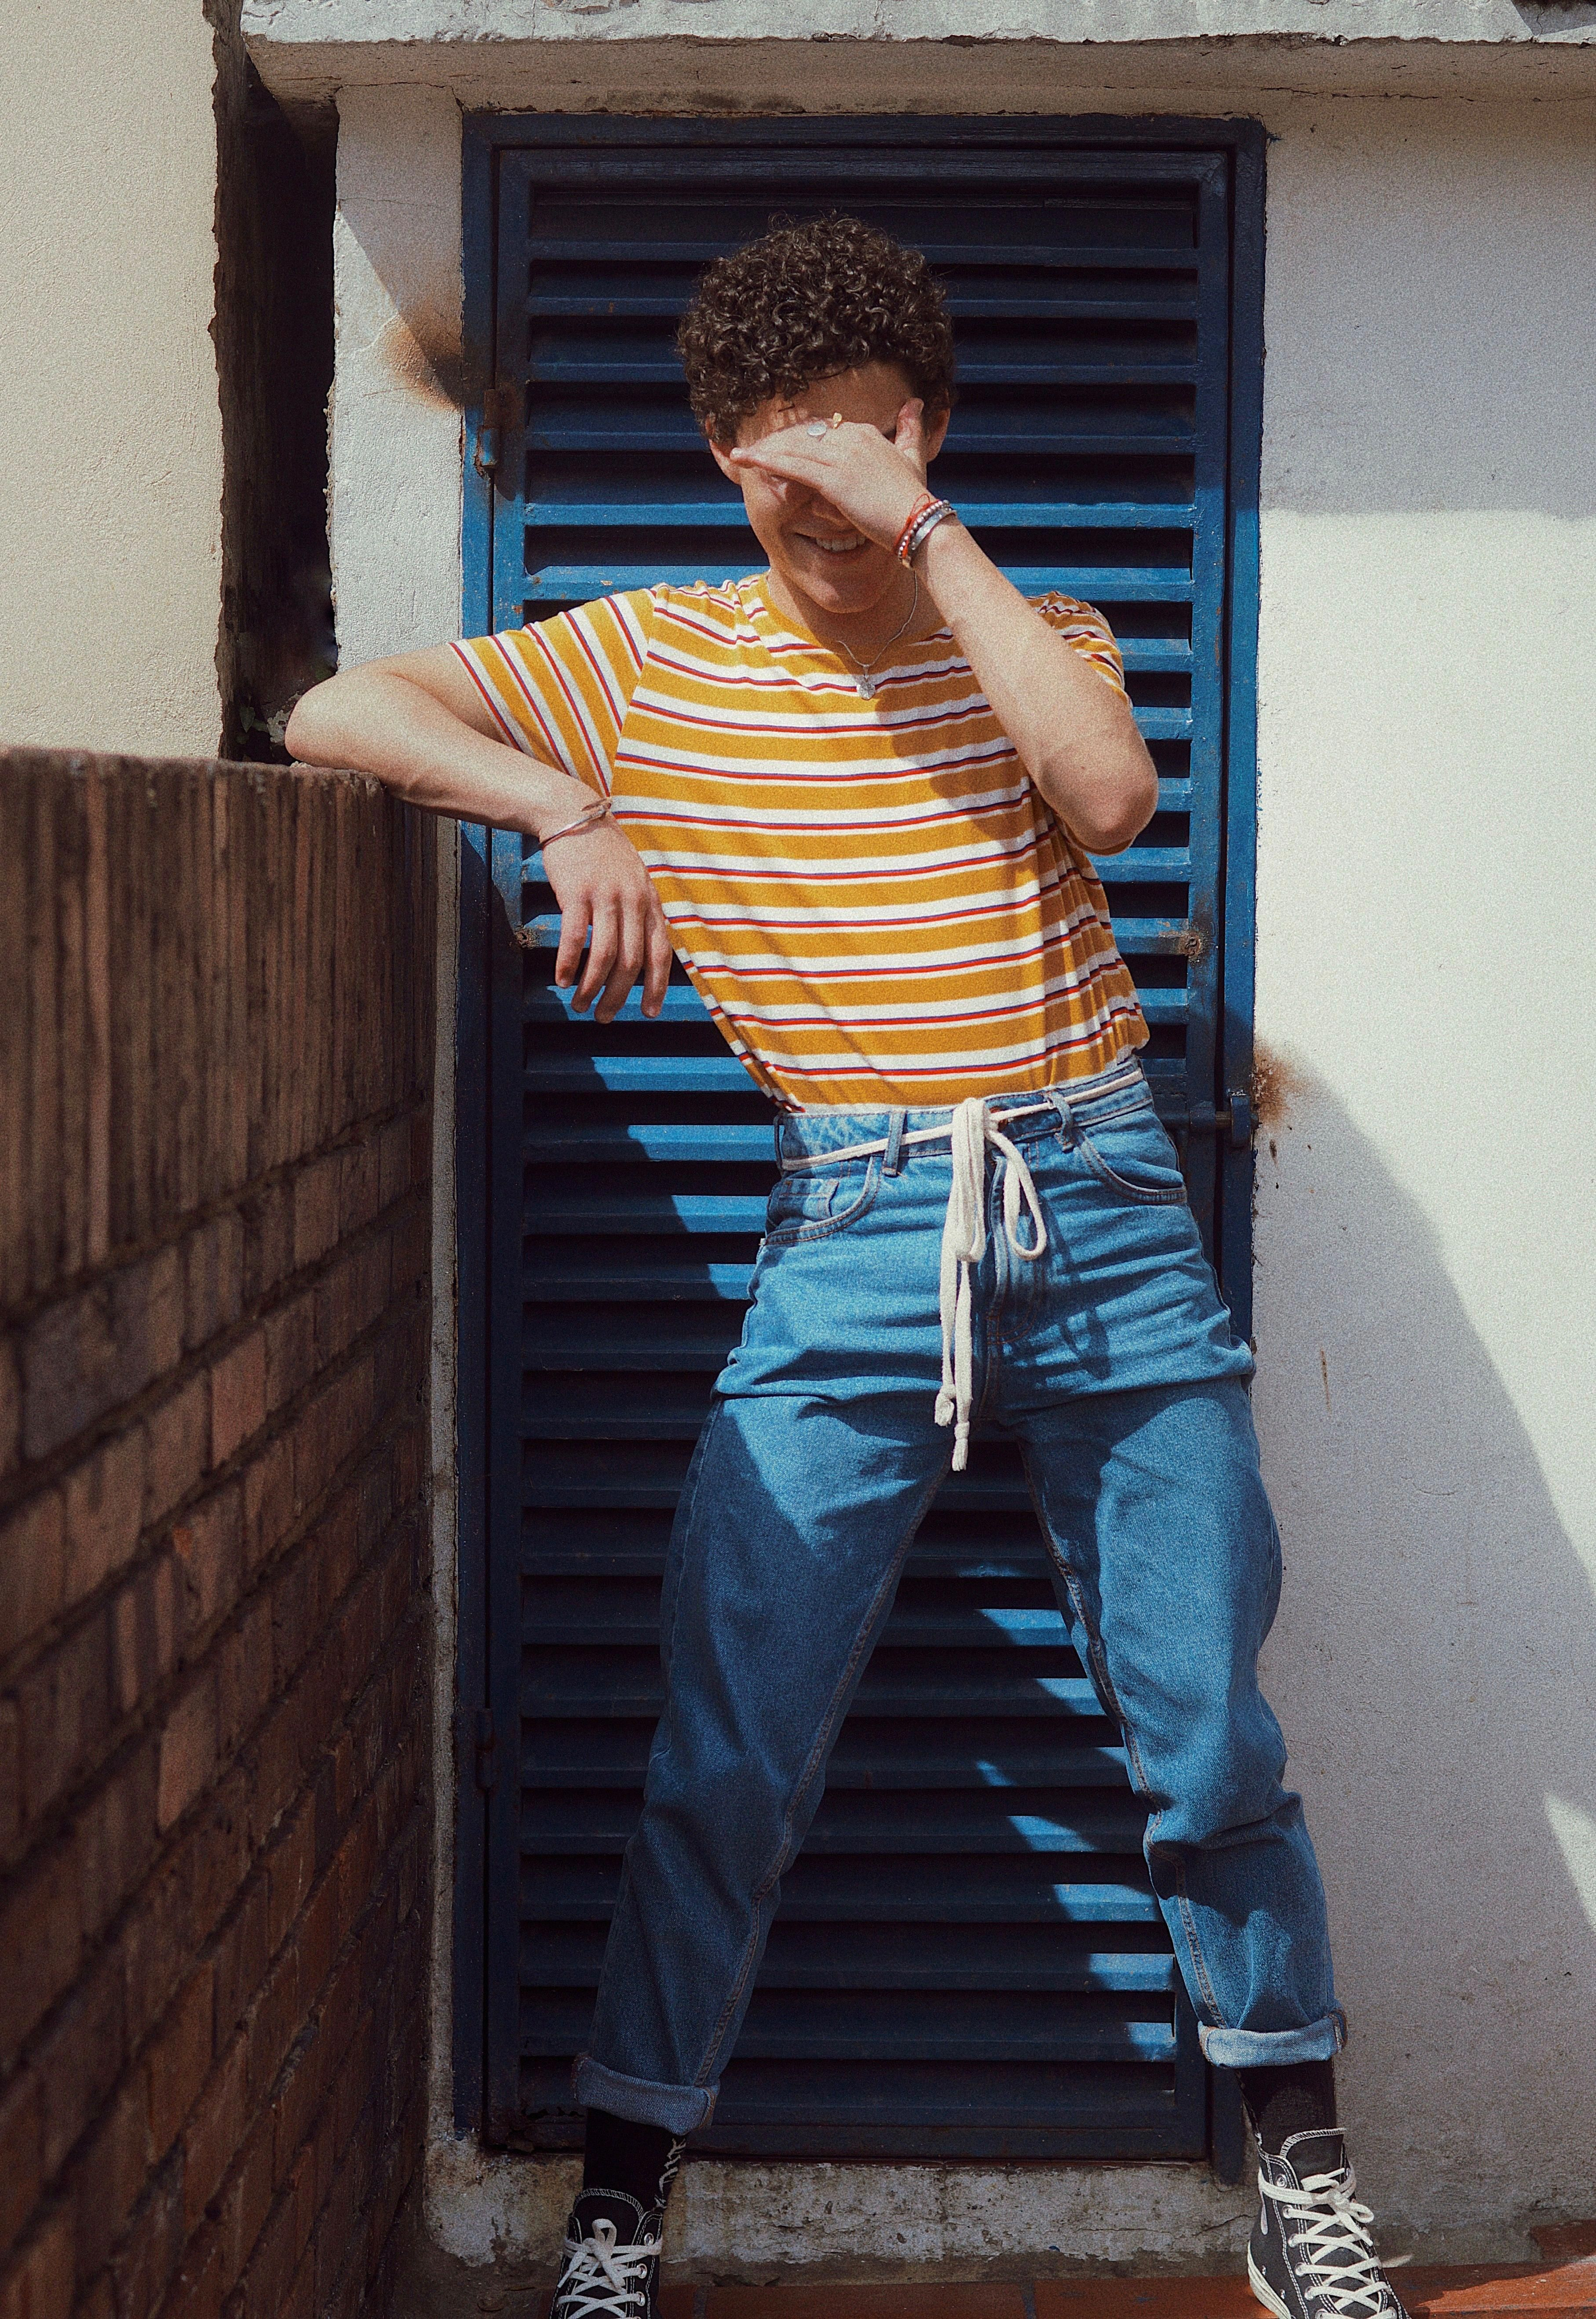 Mens Fashion Photography That Look Fab Mensfashionphotography Styles De Mode Pour Hommes Style Vestimentaire Homme Mode Homme